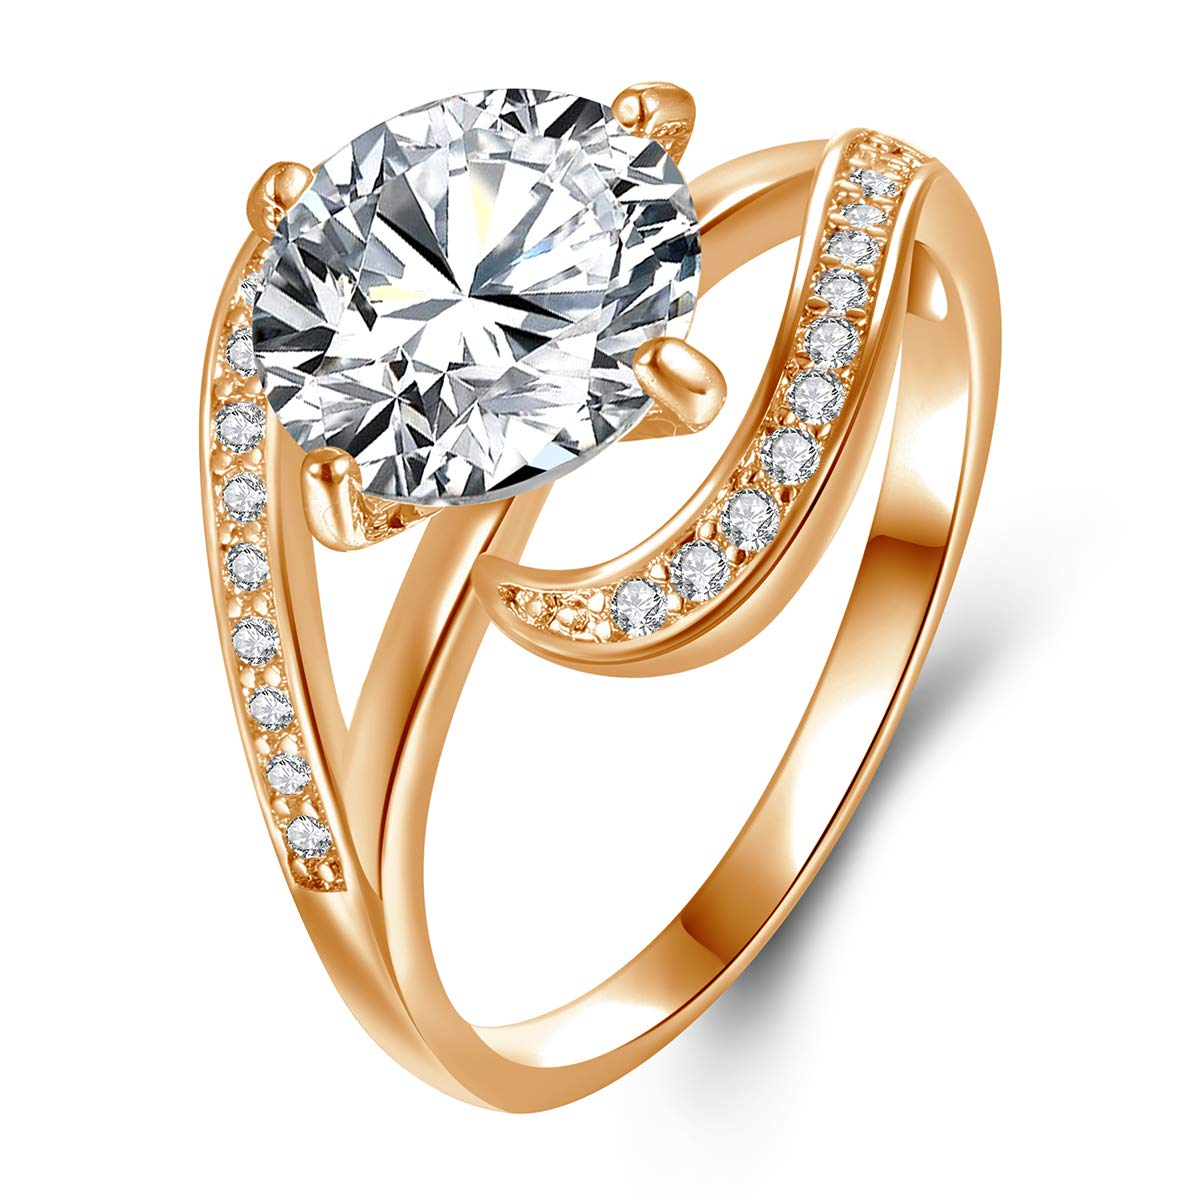 Champagne Rose Gold Plated 2.7ct Round CZ Simulated Diamond Solitaire Wedding Engagement Rings for Women Size 5-10